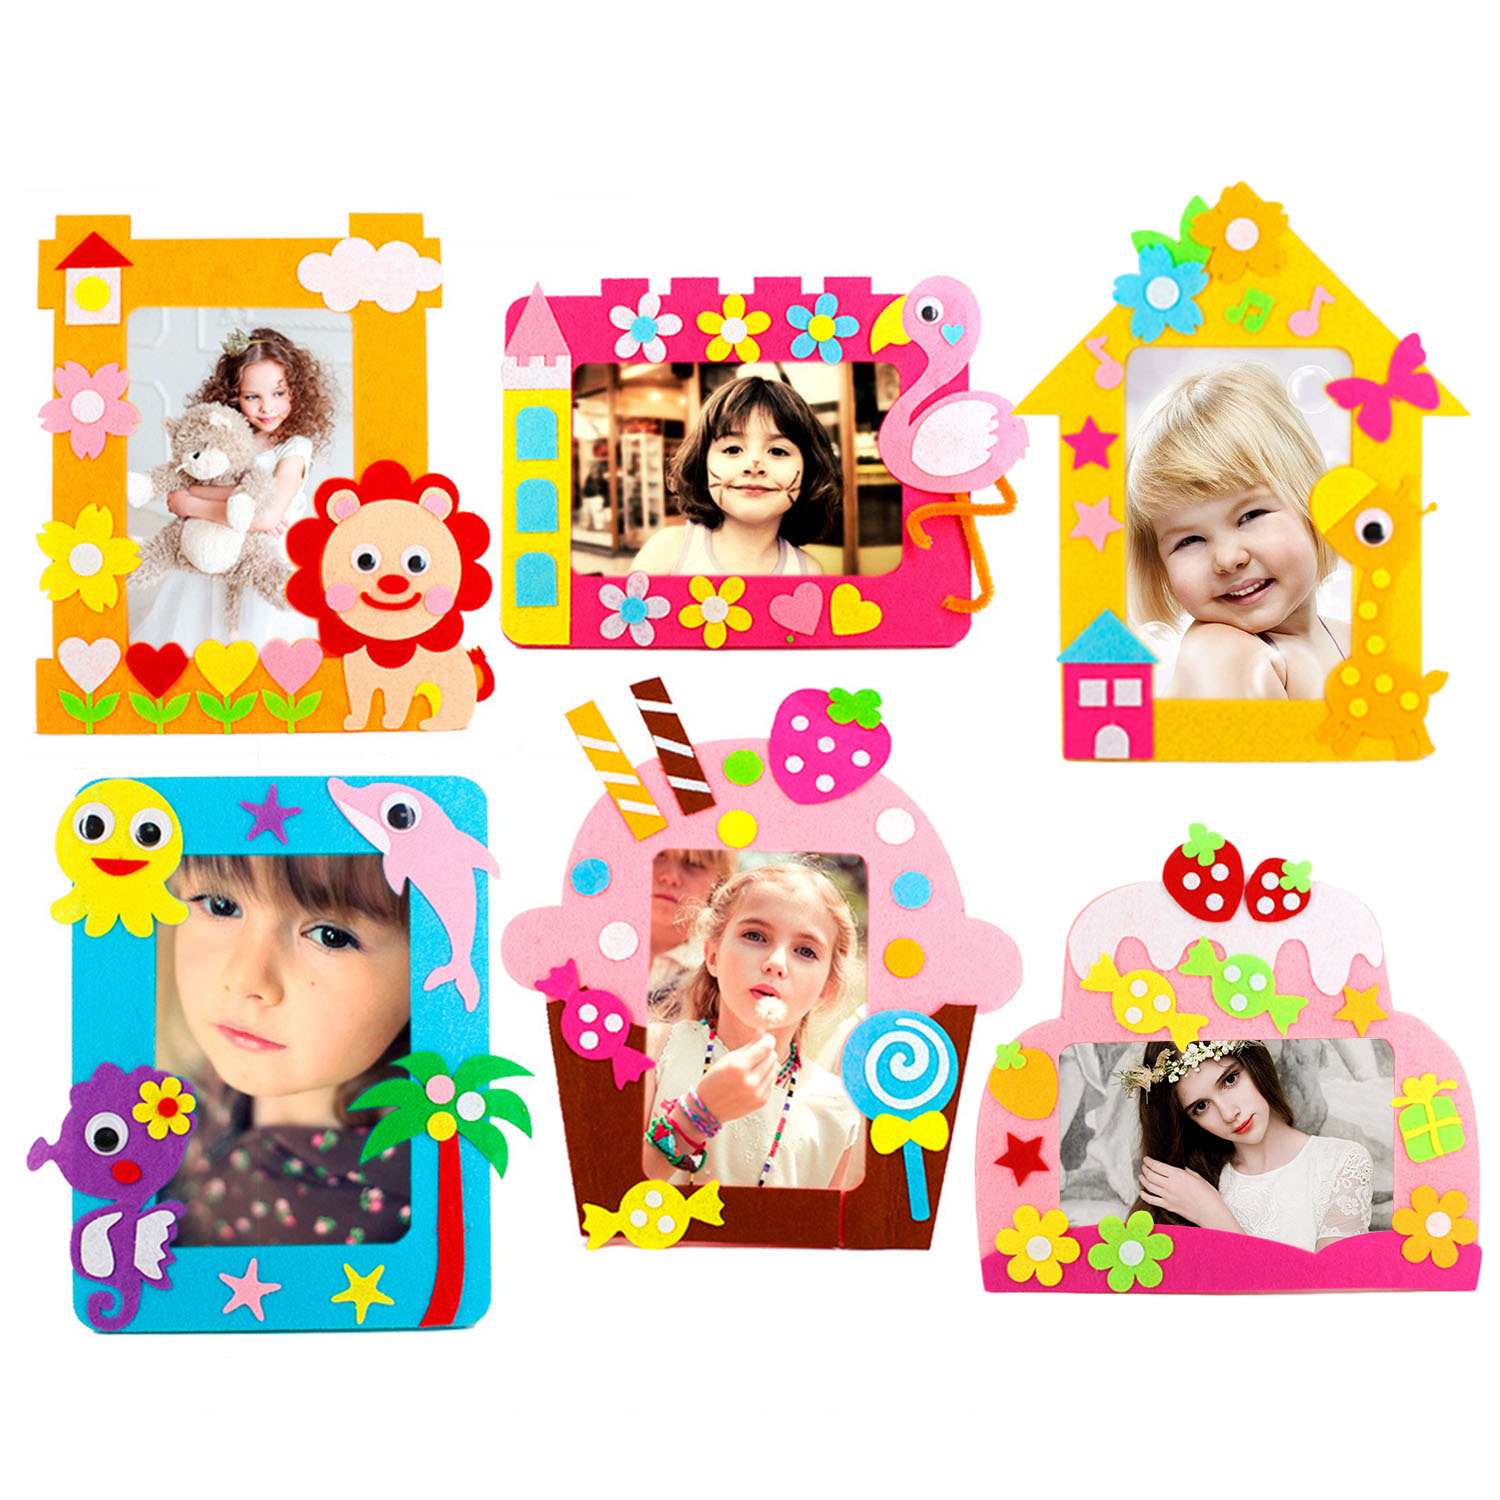 6pcs Kids Cartoon DIY Non-woven Photo Frame 3D Handmade Cloth Felt Applique Sticker Picture Frame Material Package Craft Toy